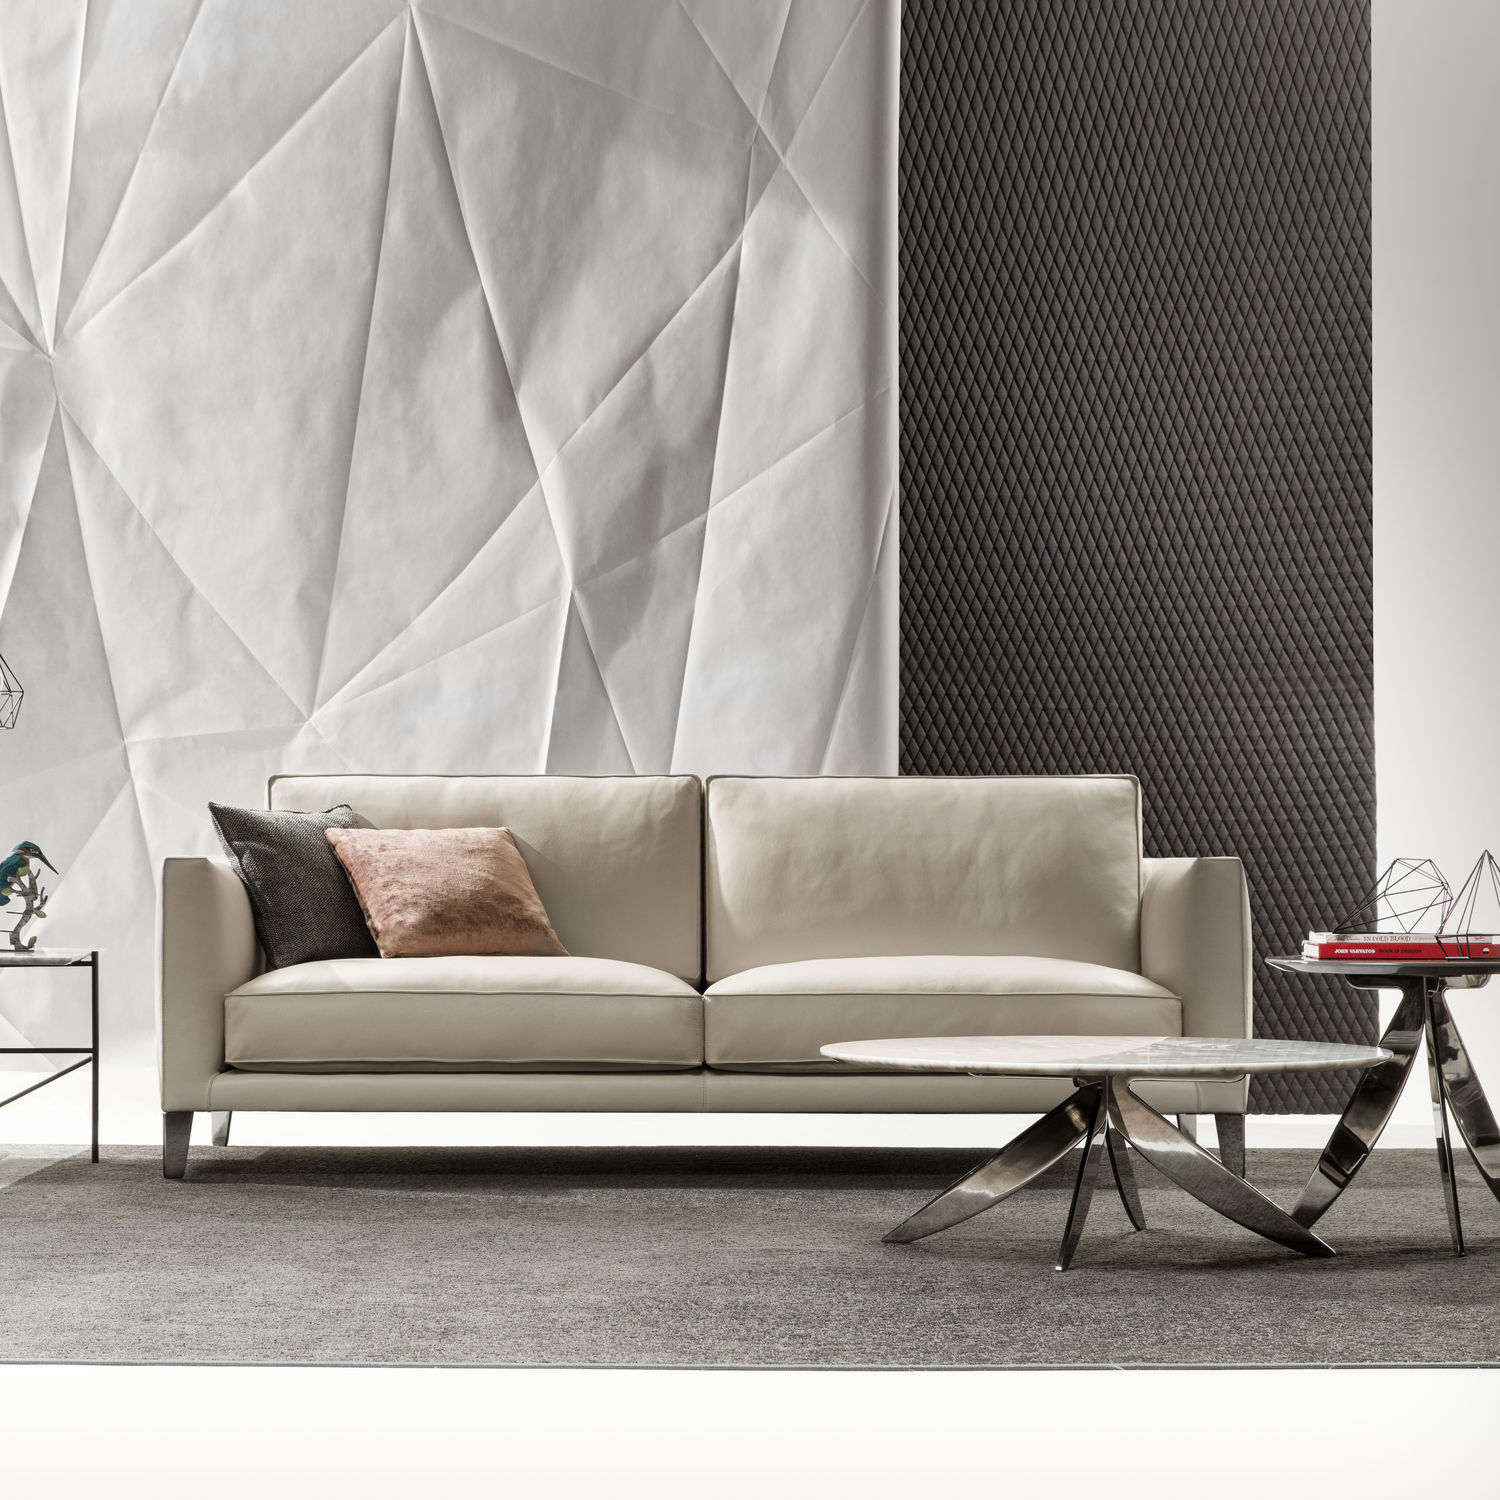 Berto Salotti Meda Contemporary Sofa Leather 4 Seater With Removable Cover